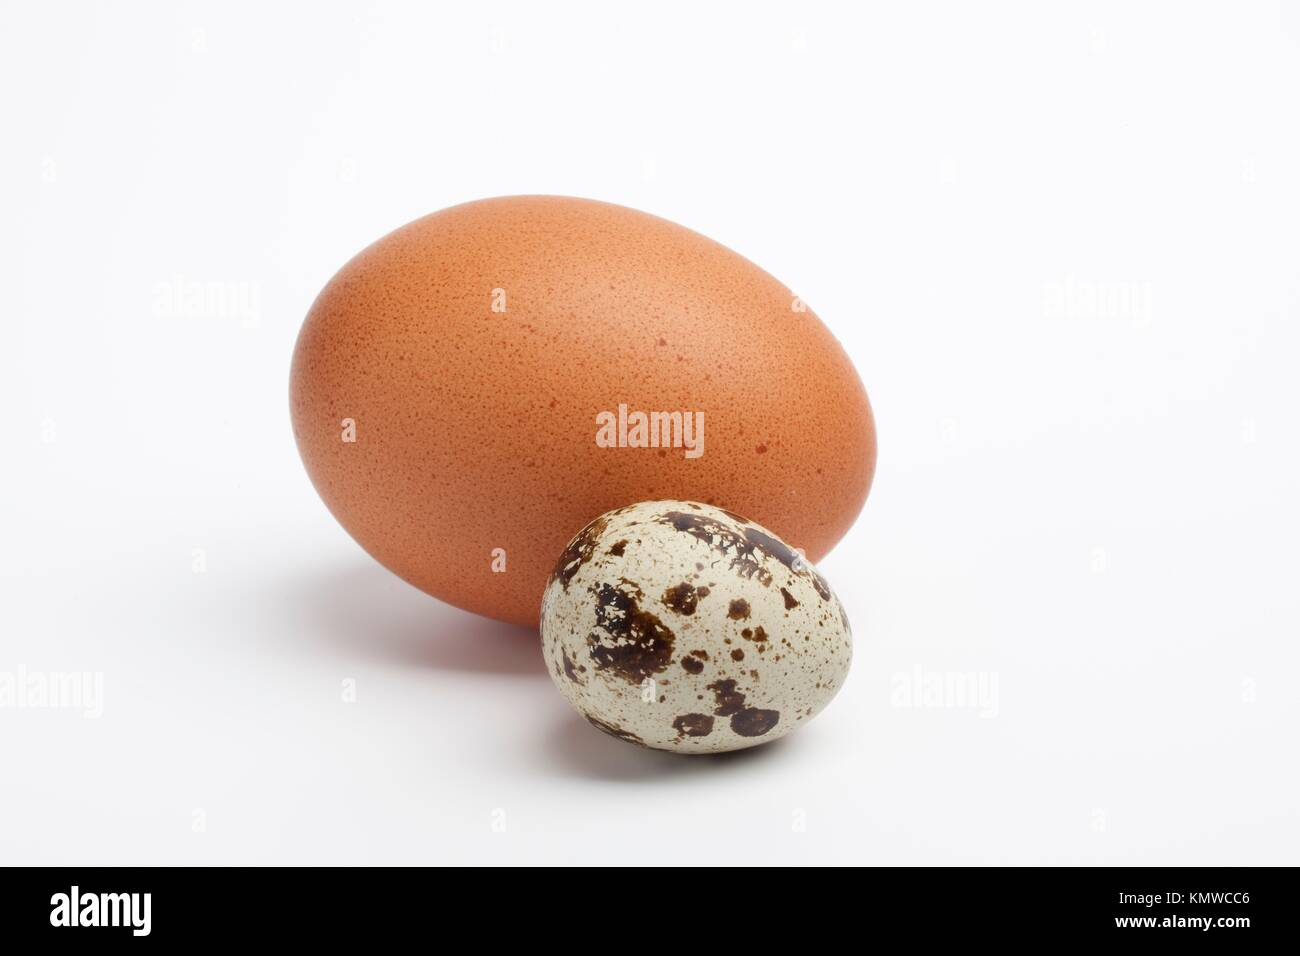 Quail egg with a chicken egg - Stock Image